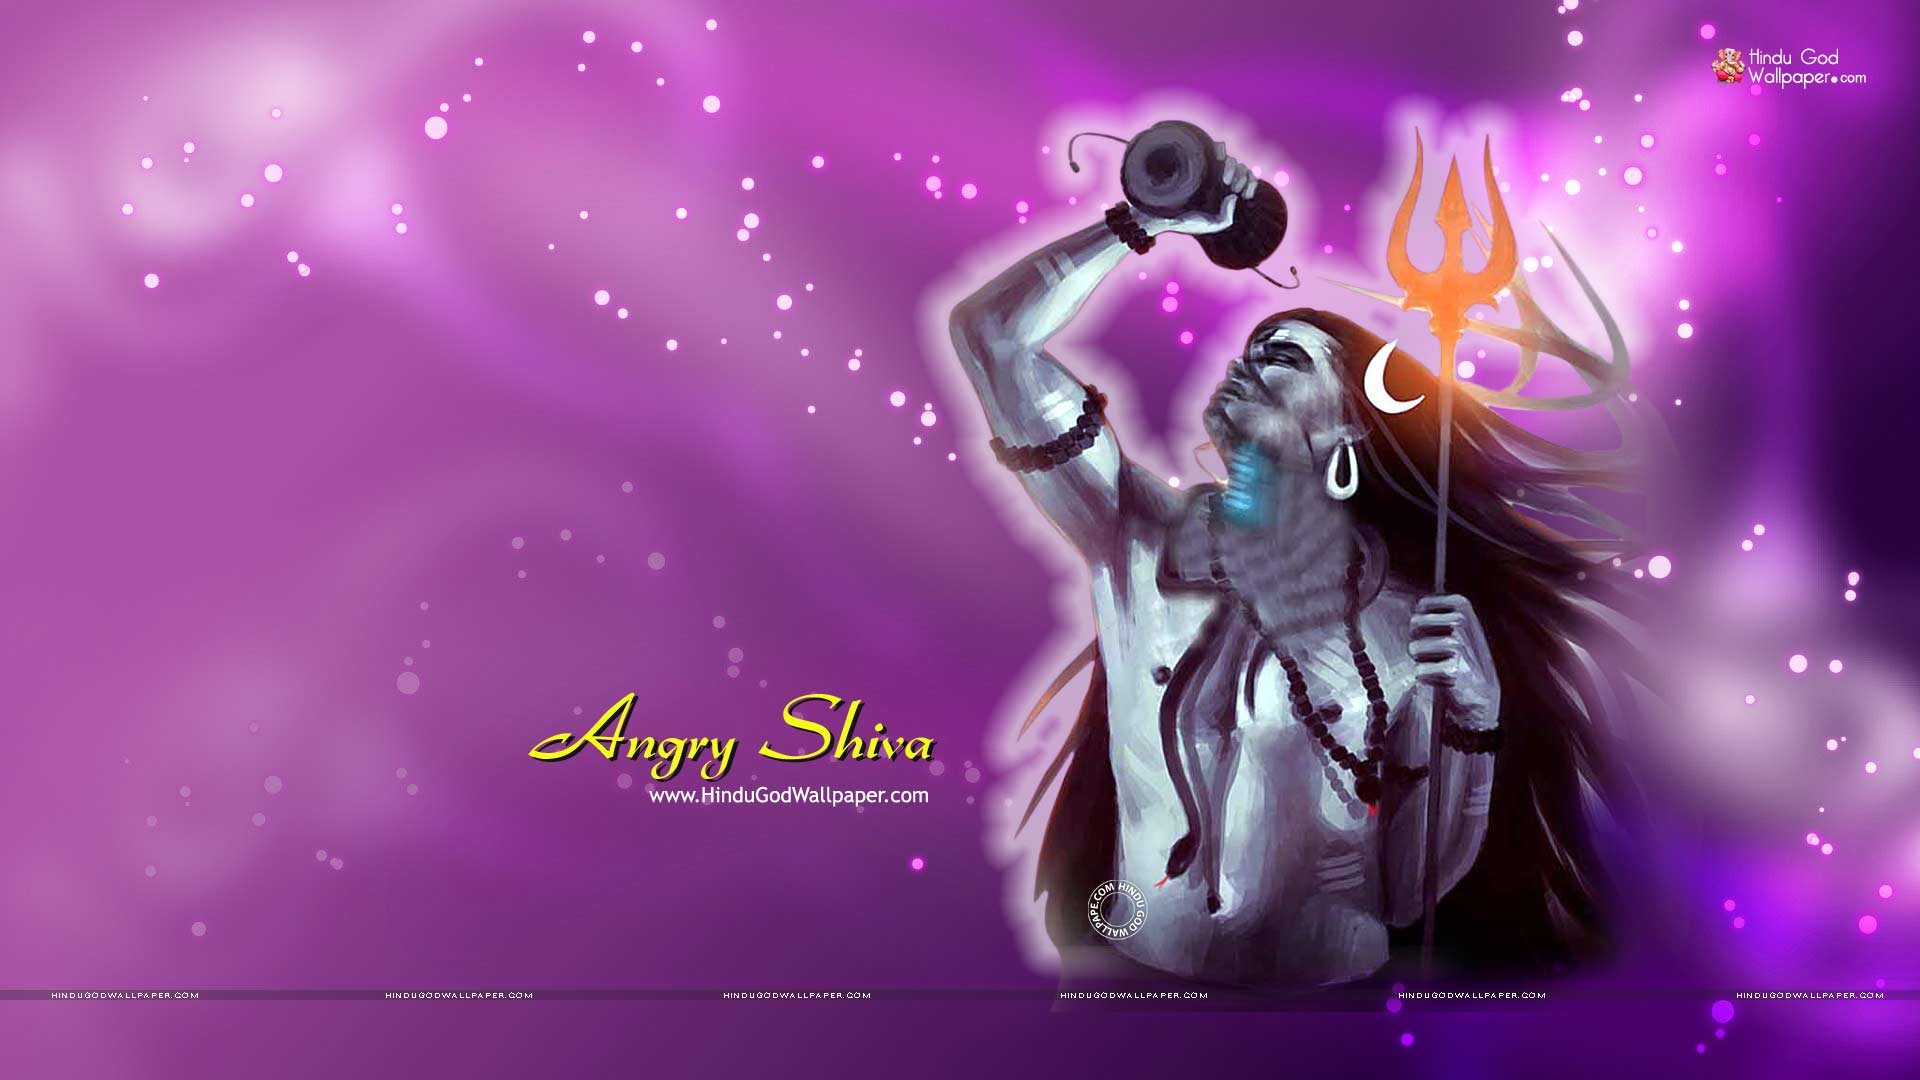 Angry Shiva Hd Wallpapers 1080p Images Full Size Free Download